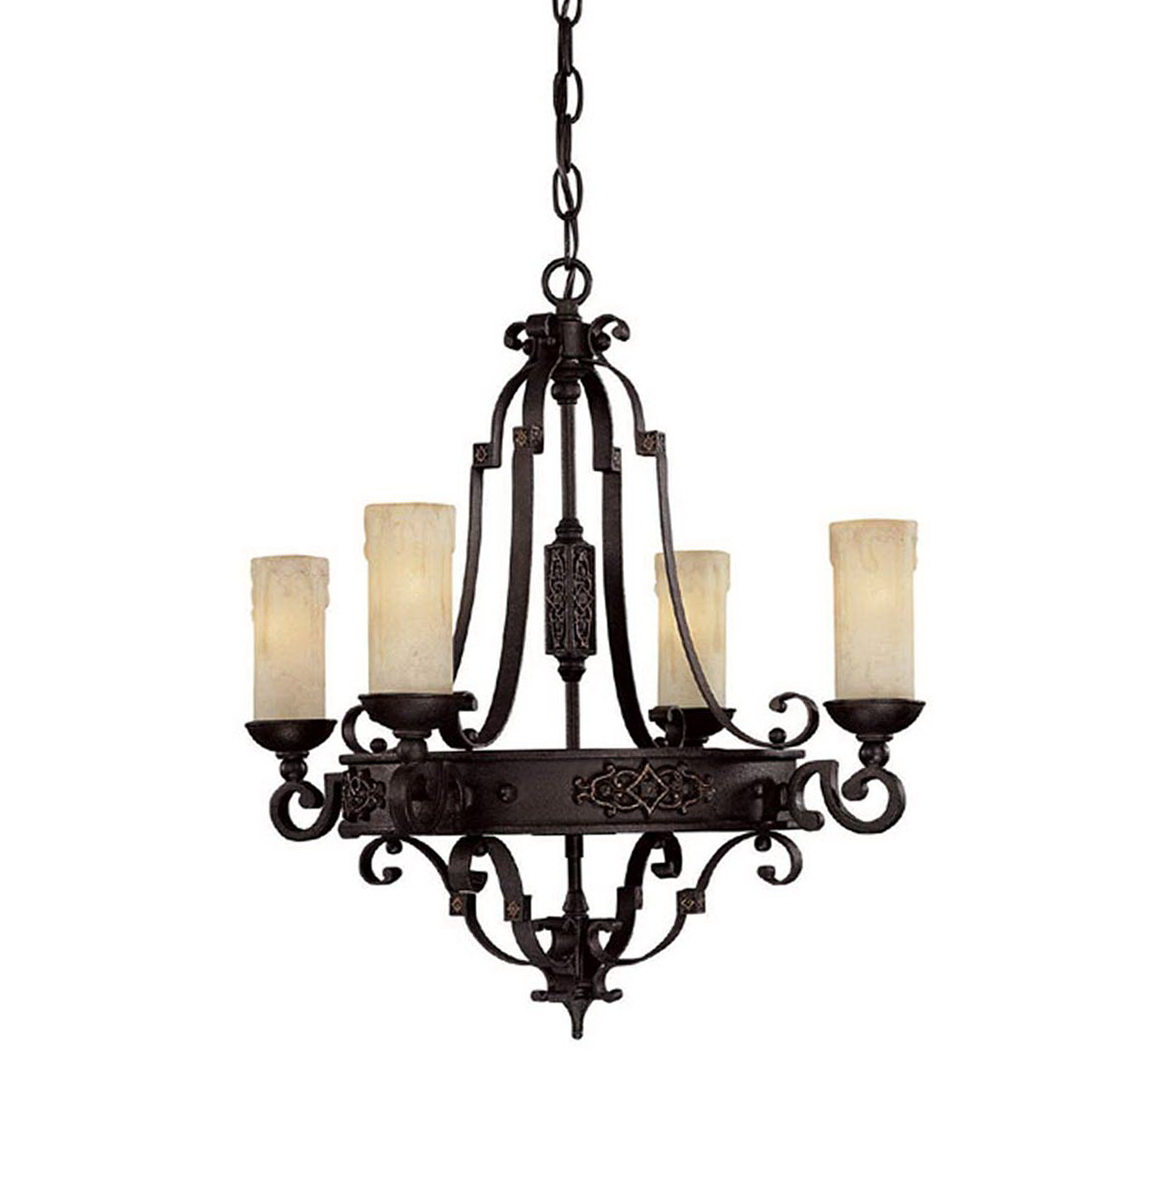 Wrought iron chandeliers india chandelier designs wrought iron chandeliers rustic home design ideas arubaitofo Images